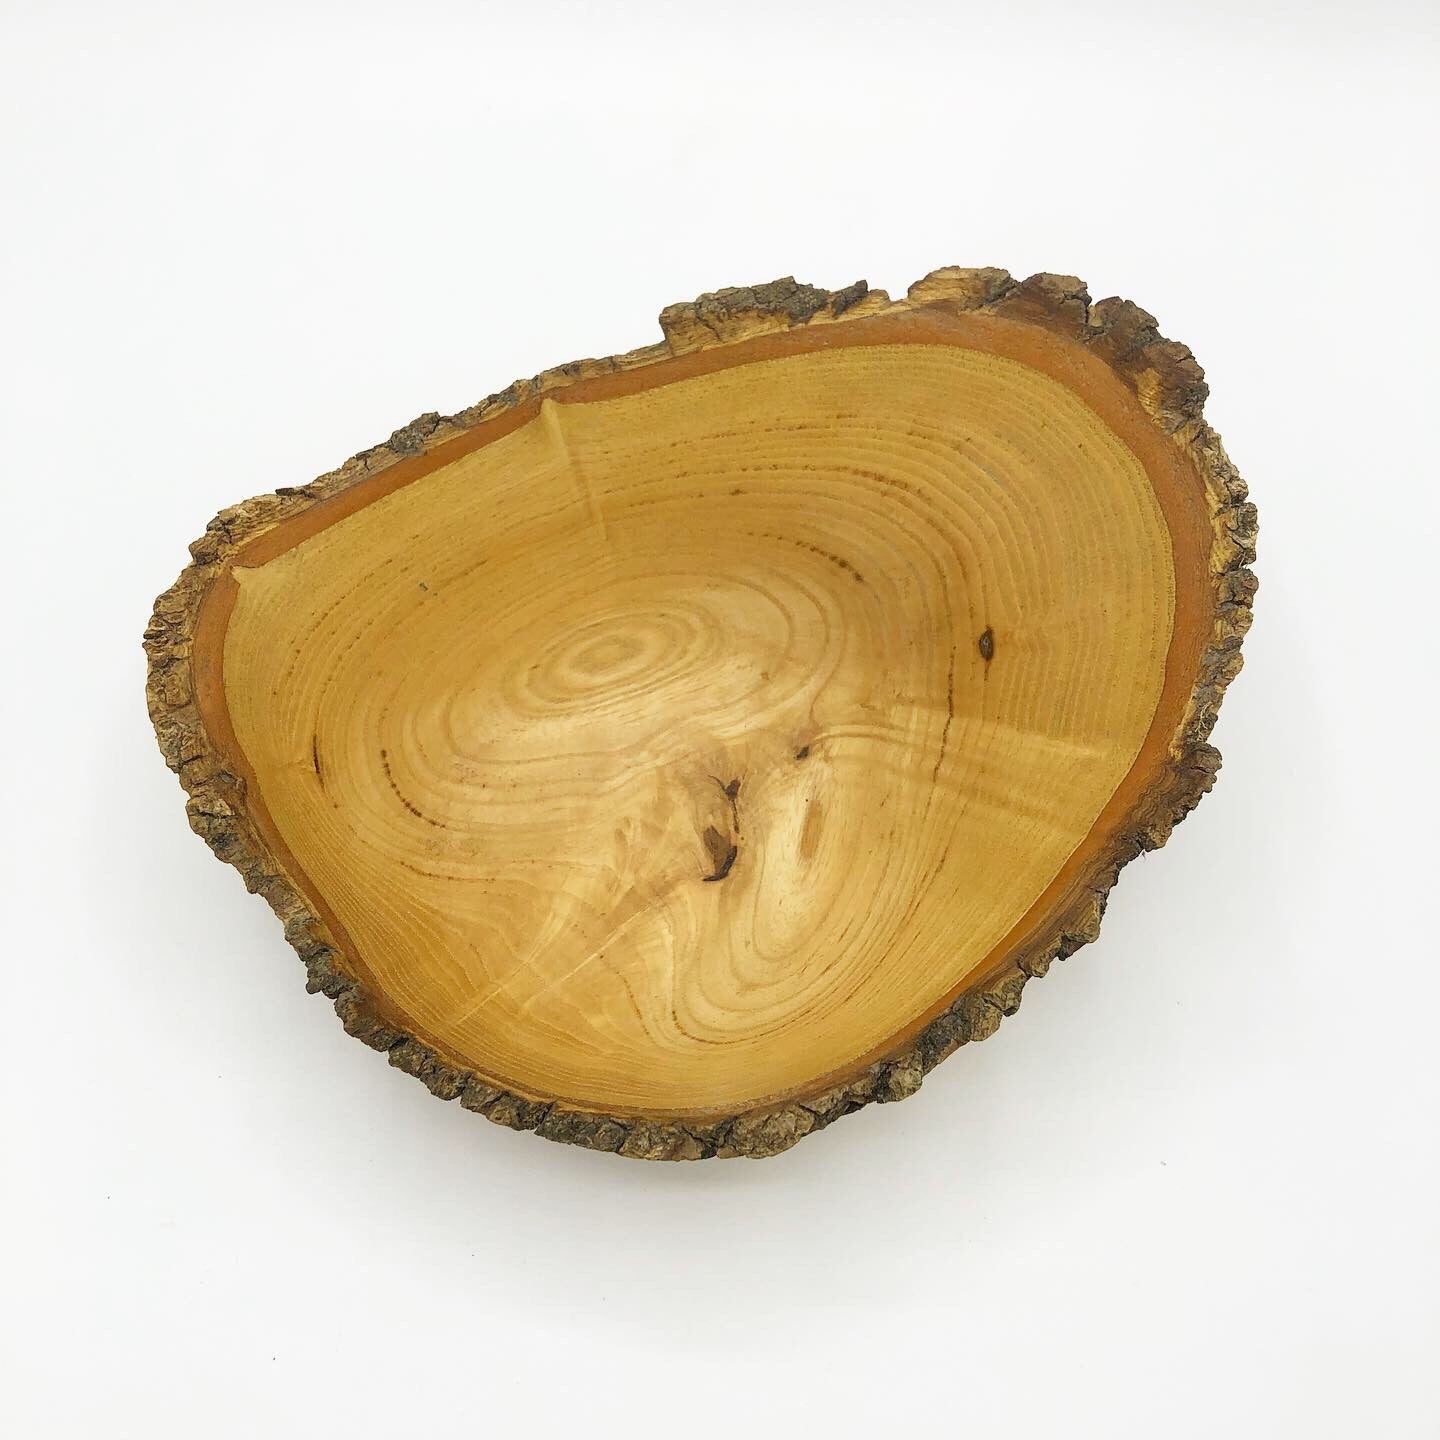 Small Maple Live Edge Bowl - No One Alike